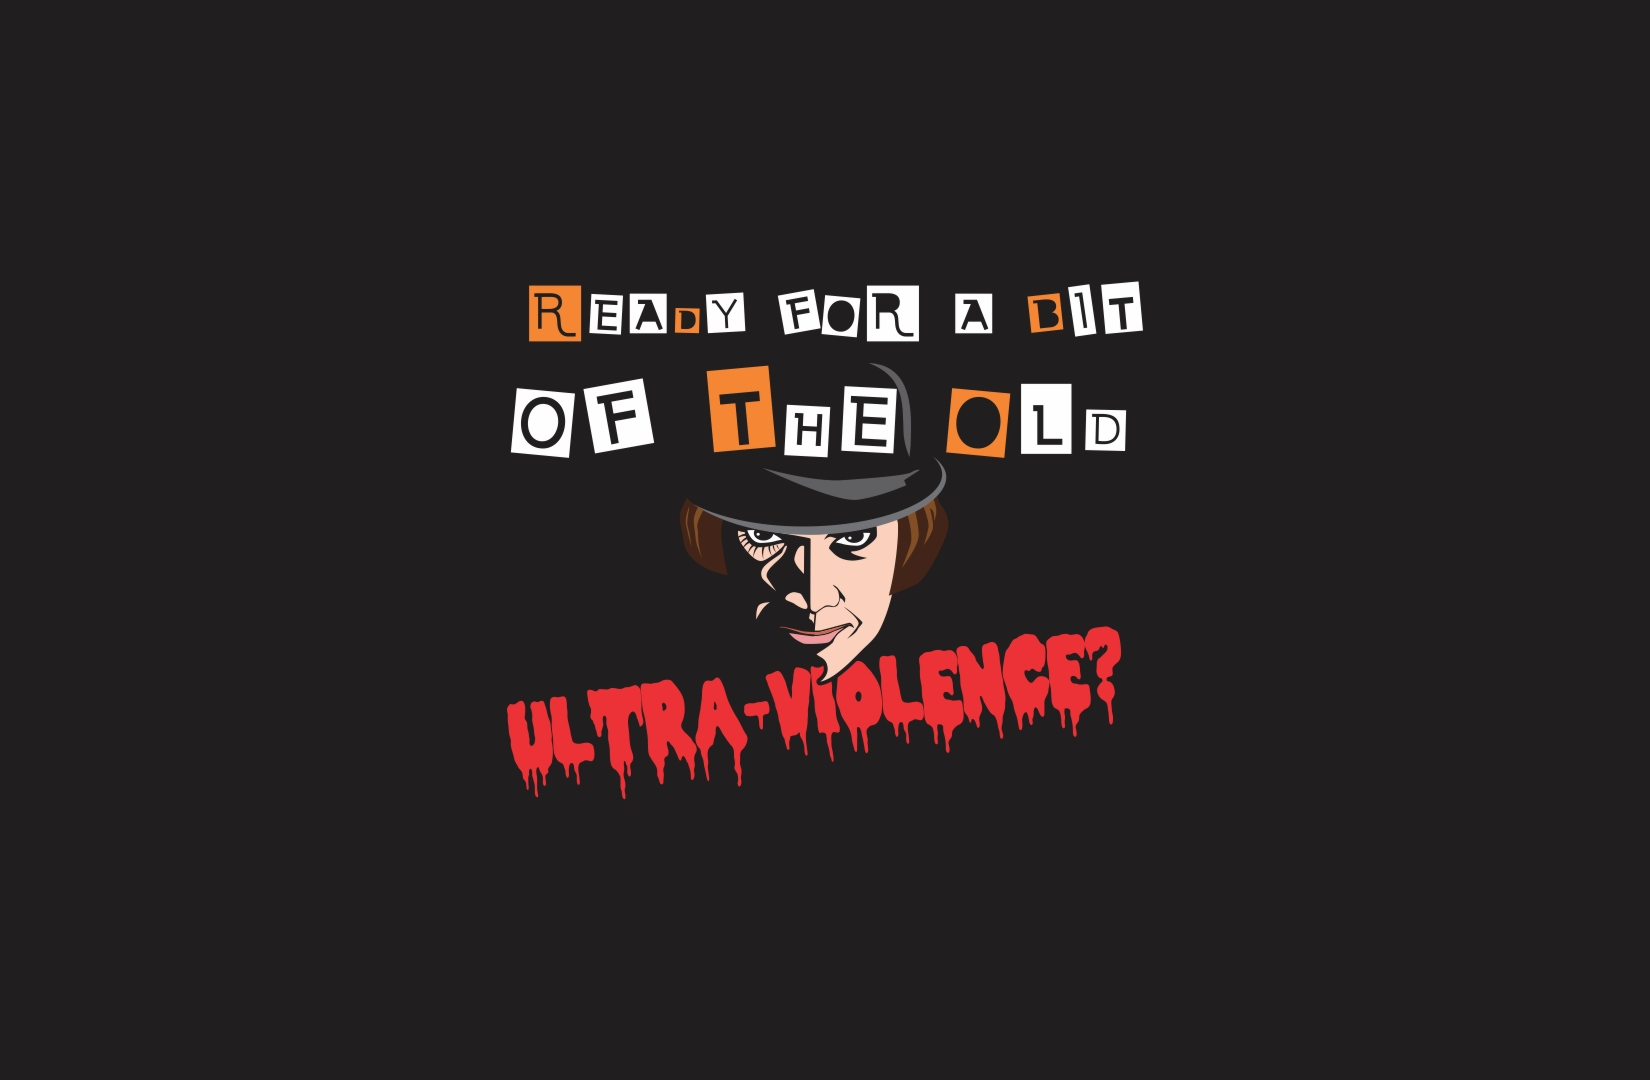 Alpha Coders Wallpaper Abyss Movie A Clockwork Orange 278555 A Clockwork Orange Wallpaper 1920x1080